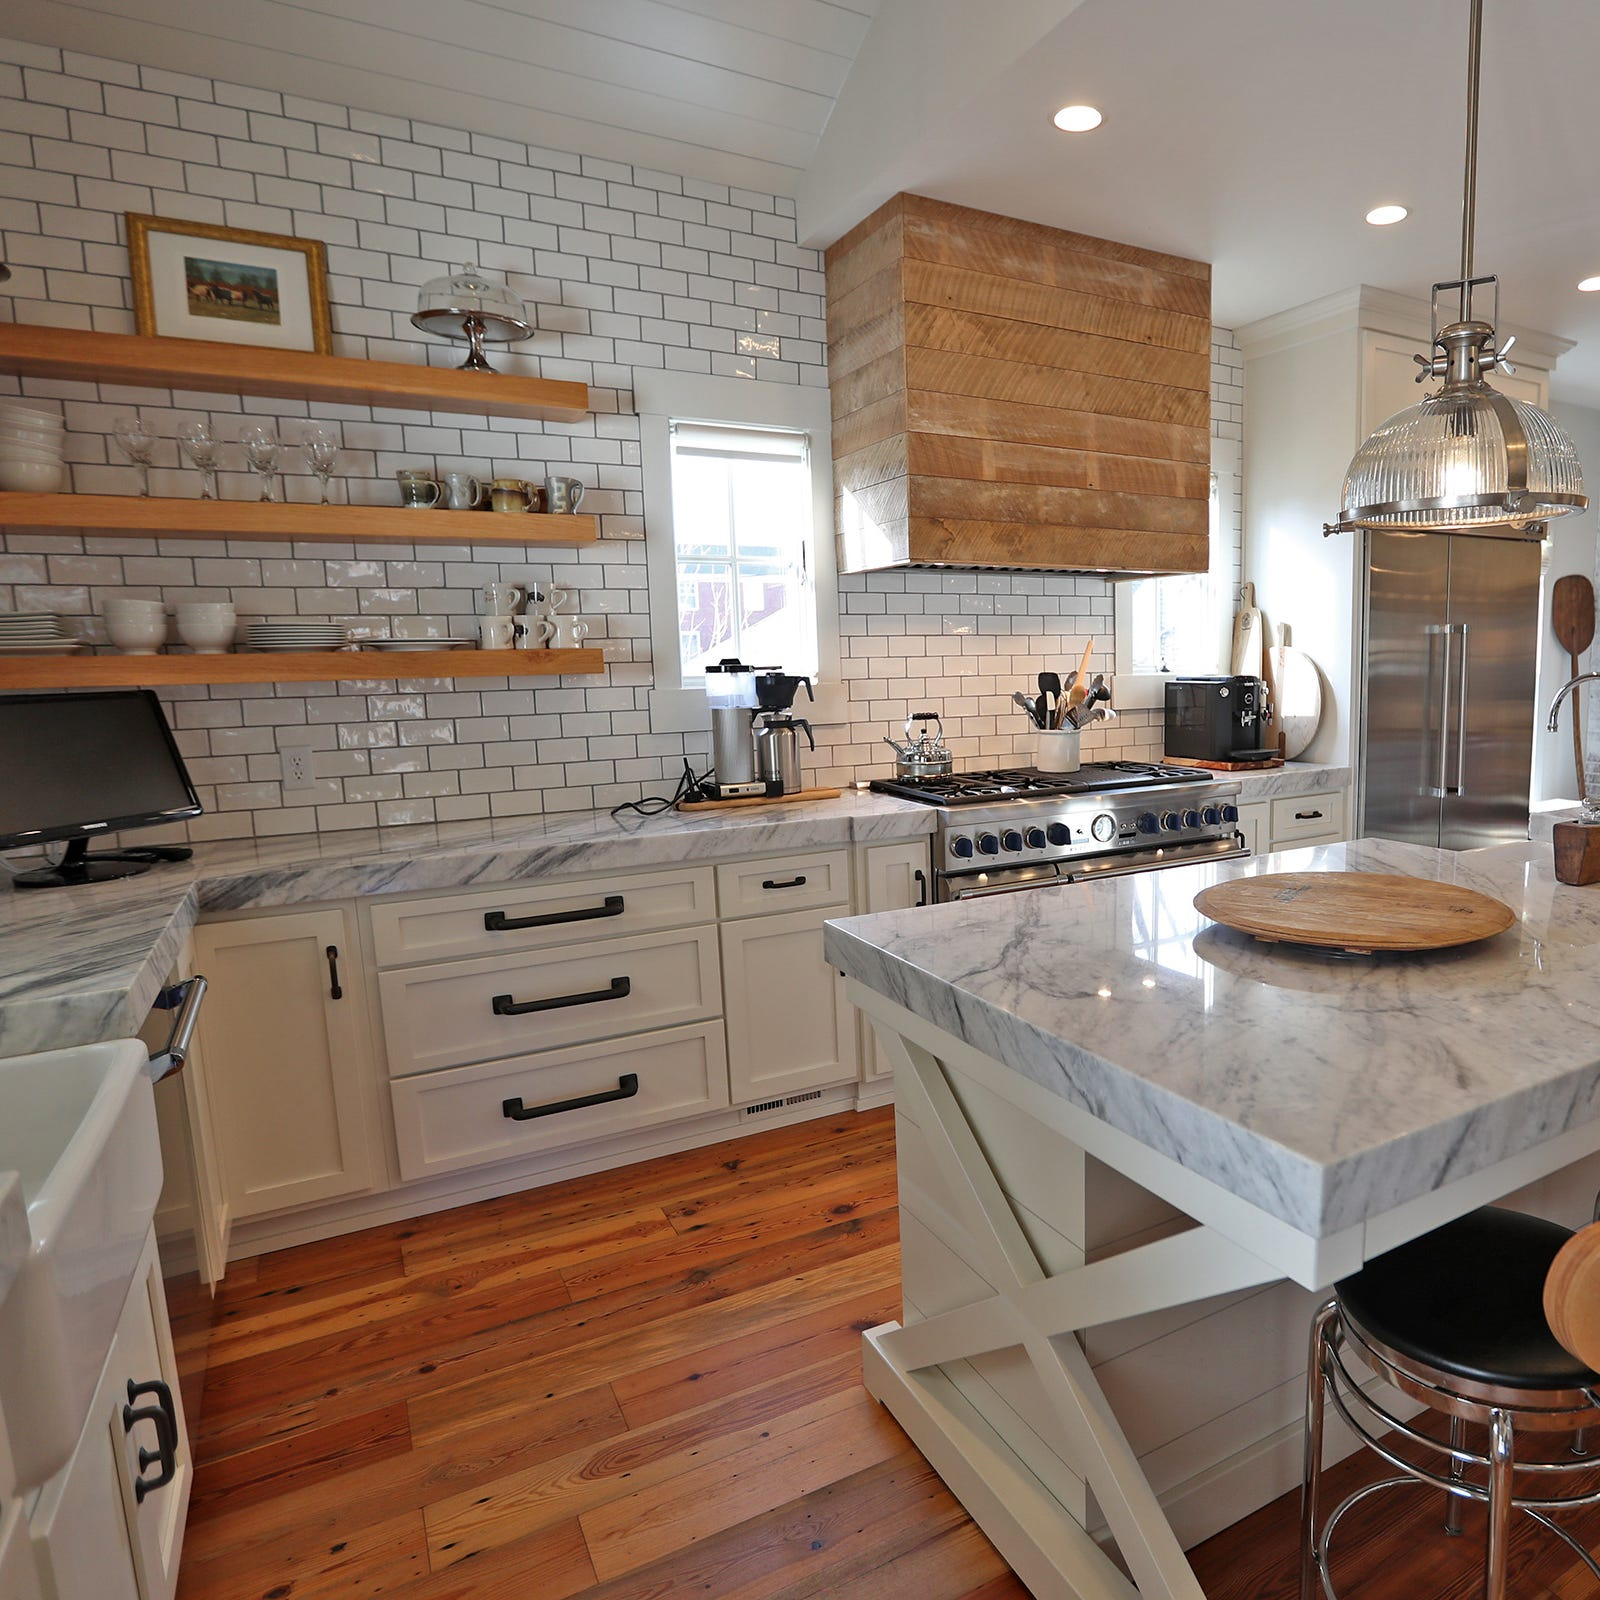 Hot Property: $1.6M modern farmhouse in Meridian Hills that would make Joanna Gaines proud